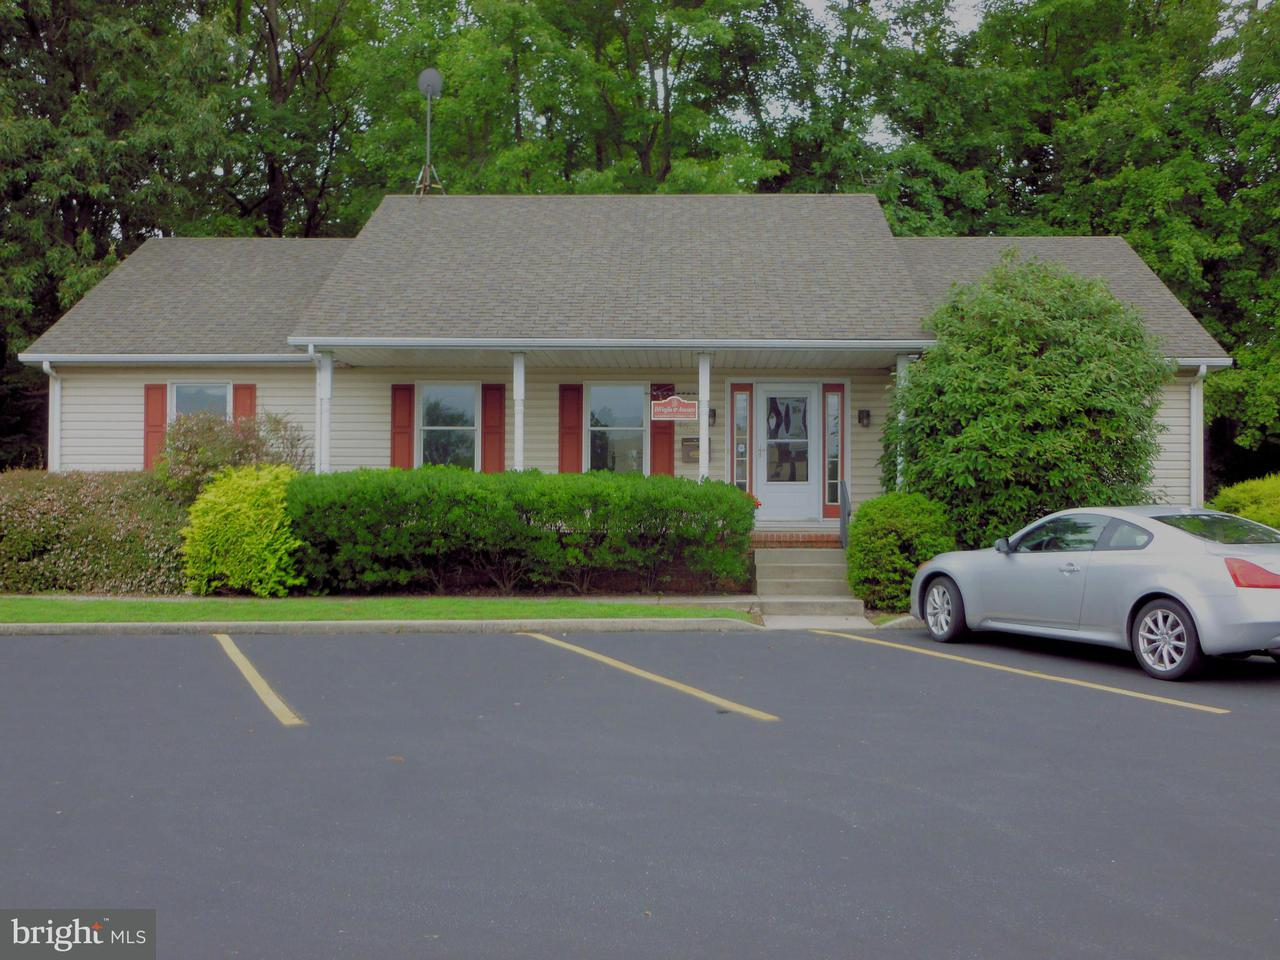 Other Residential for Rent at 406 Pulaski Hwy W Elkton, Maryland 21921 United States